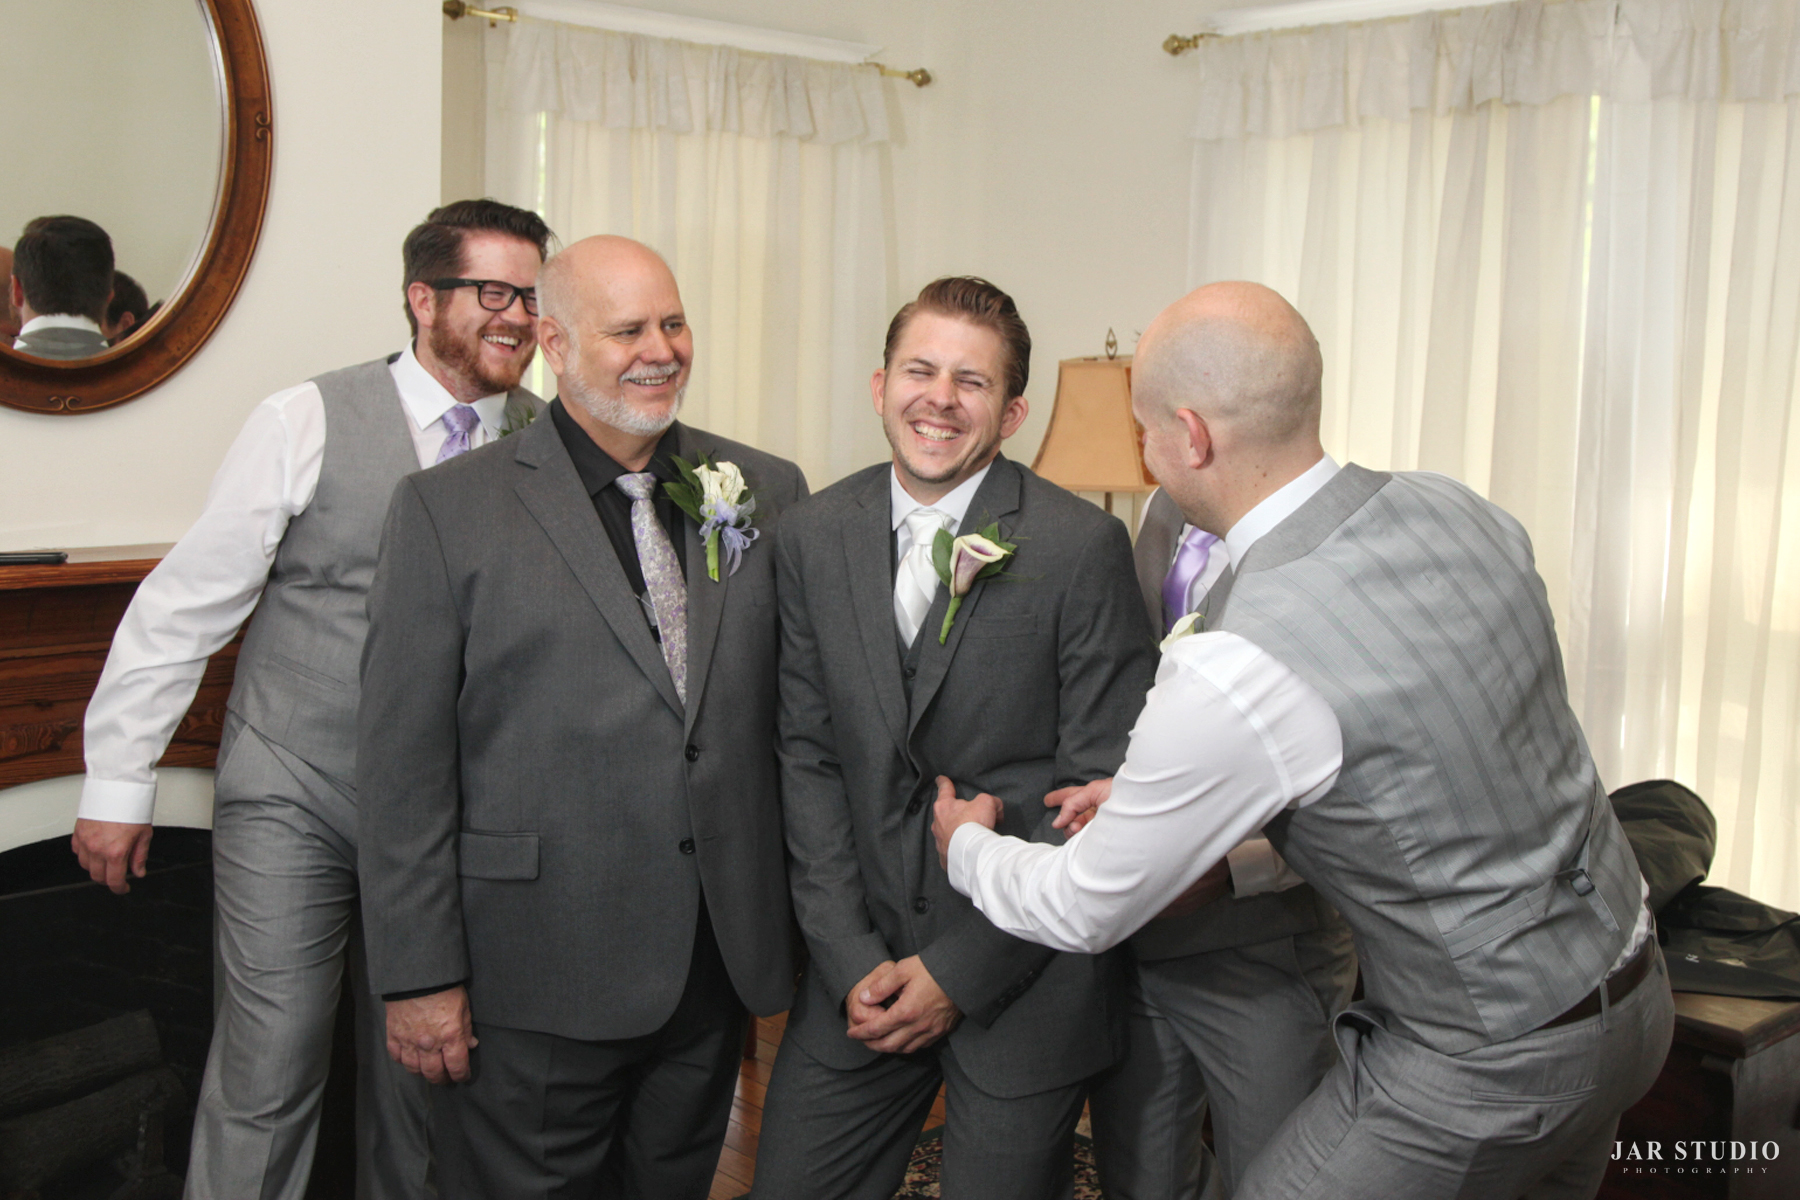 The Withers-Maguire-House-wedding-photographer-jarstudio (8).JPG